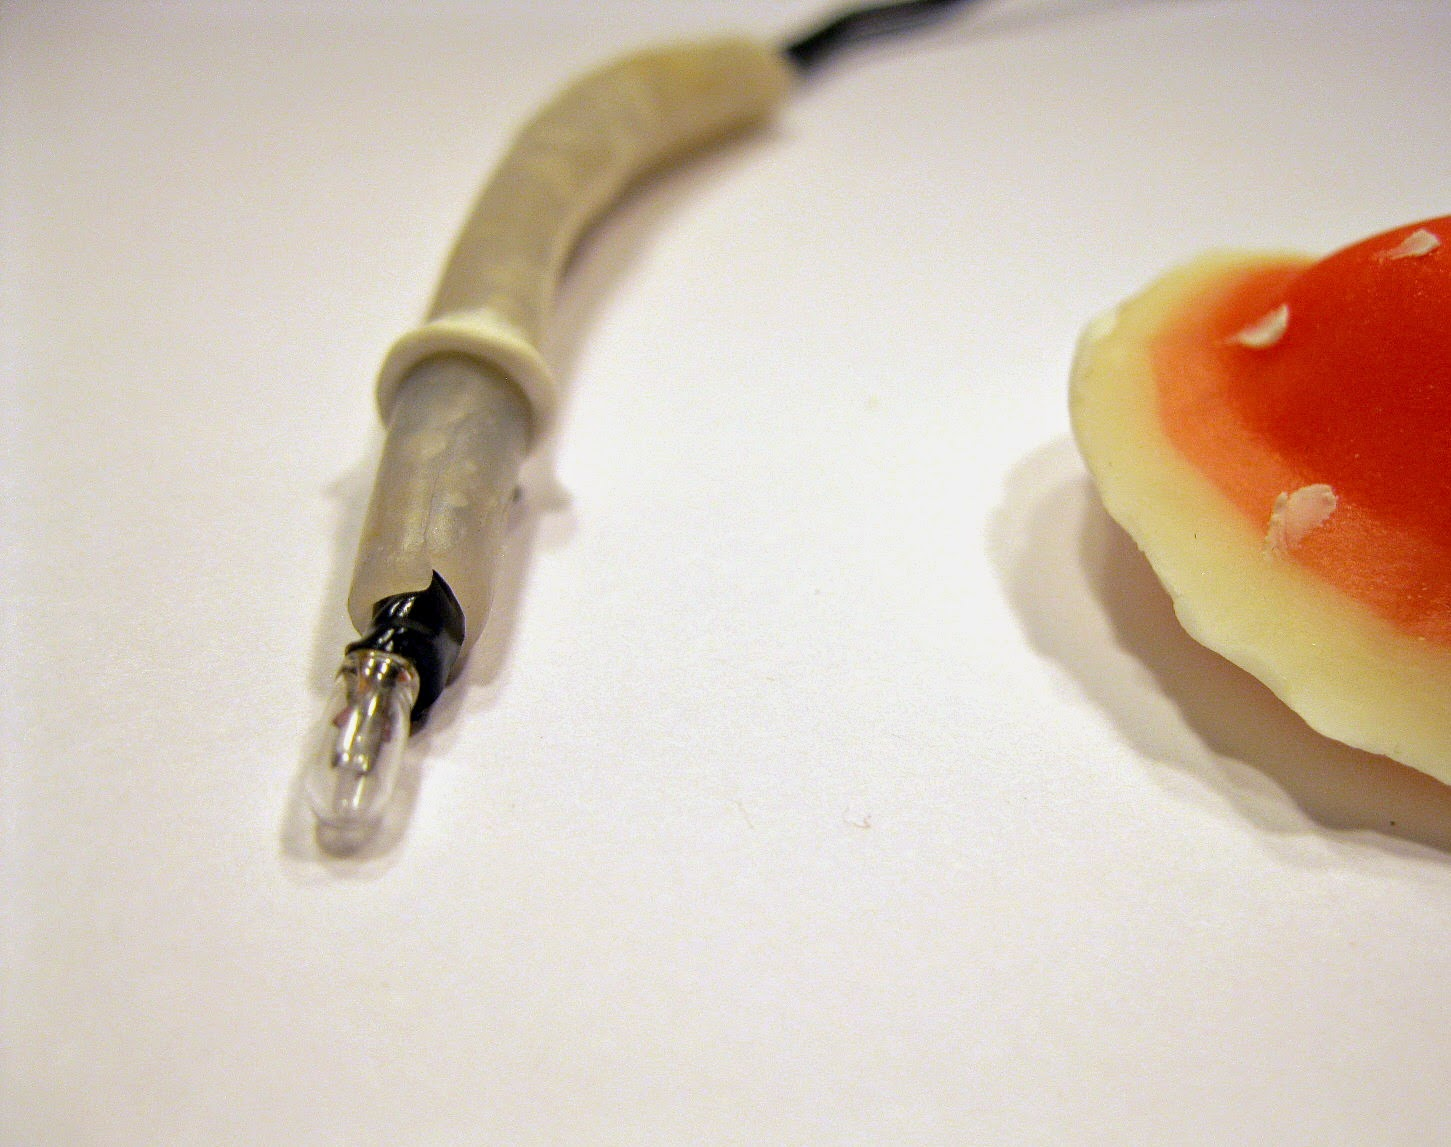 The Positive Terminal Of The Battery To One Terminal Of A Light Bulb